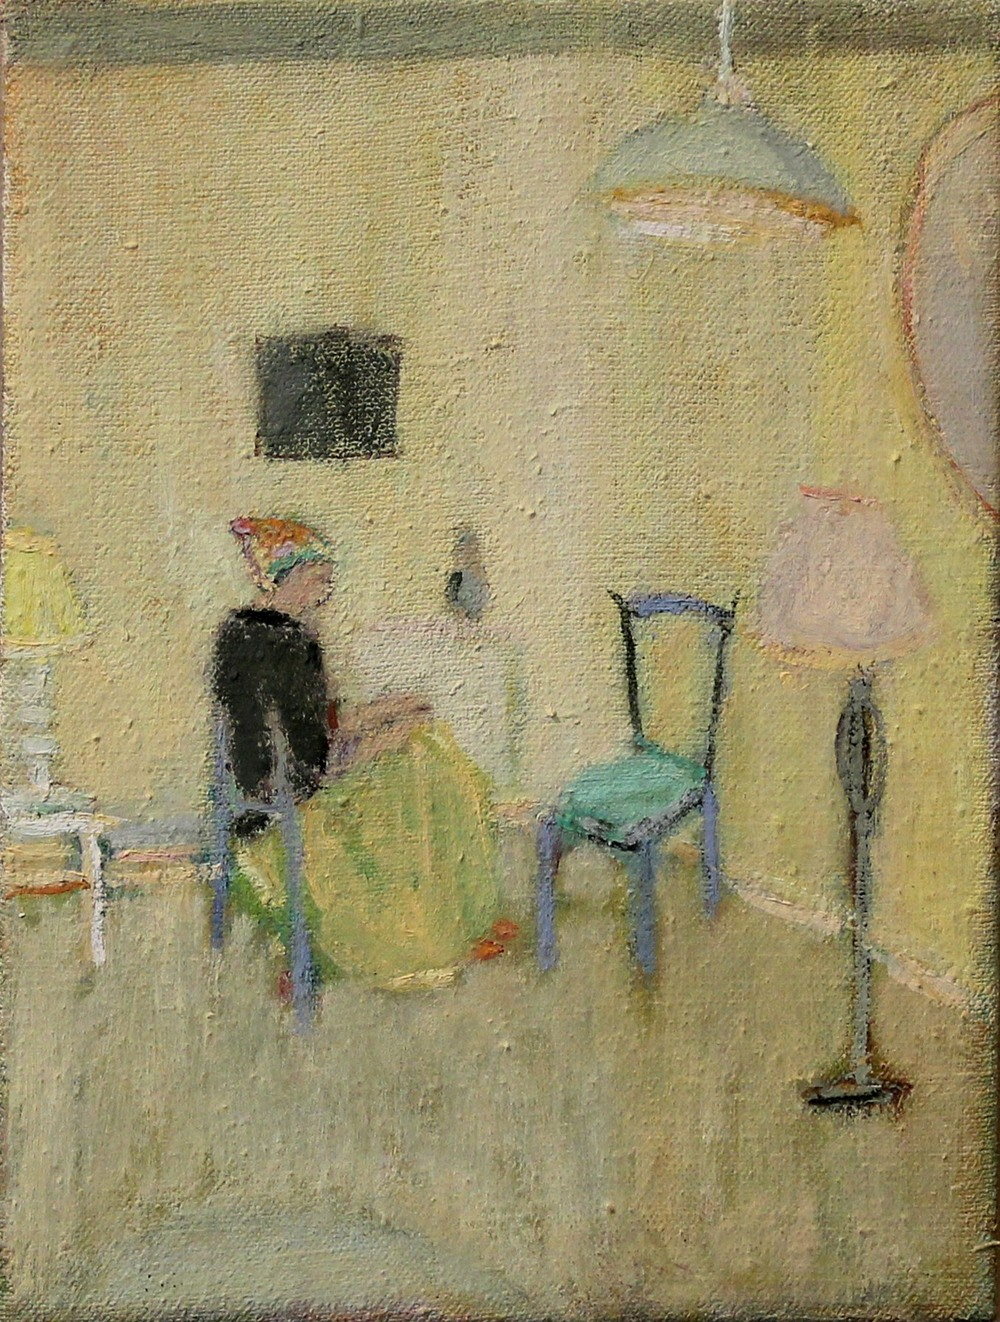 Untitled, Oil on linen, 21 x 15 cm, 2013